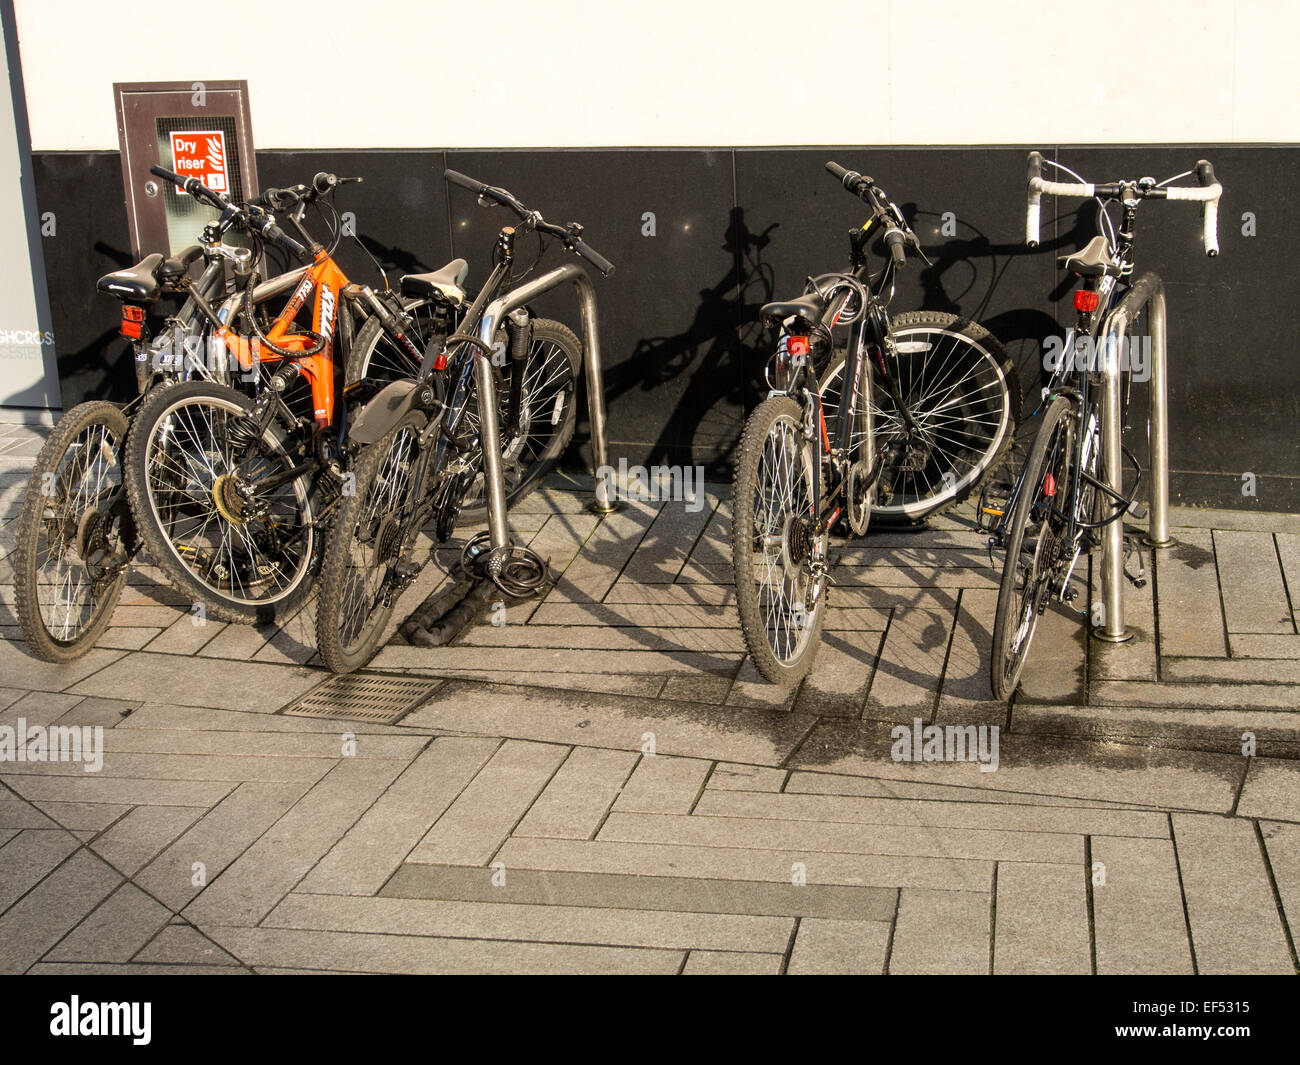 Bicycle storage racks in Shires Lane Leicester photographed in January 2015 - Stock Image